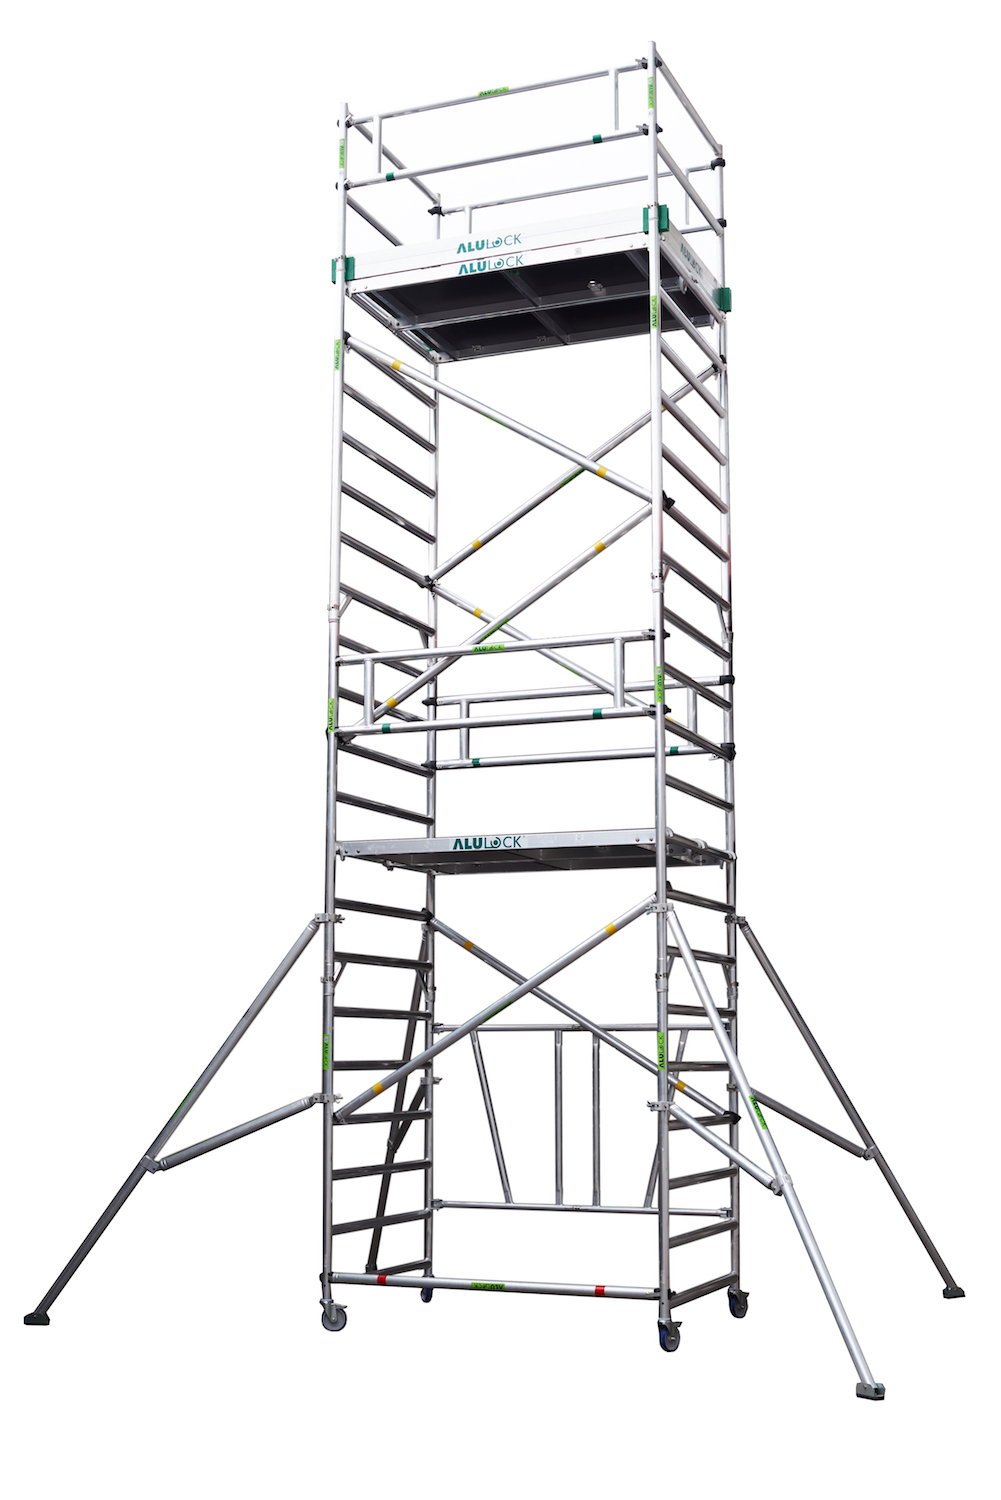 Folding Scaffold 135 x 180 cm. Working height: 7.65 m.